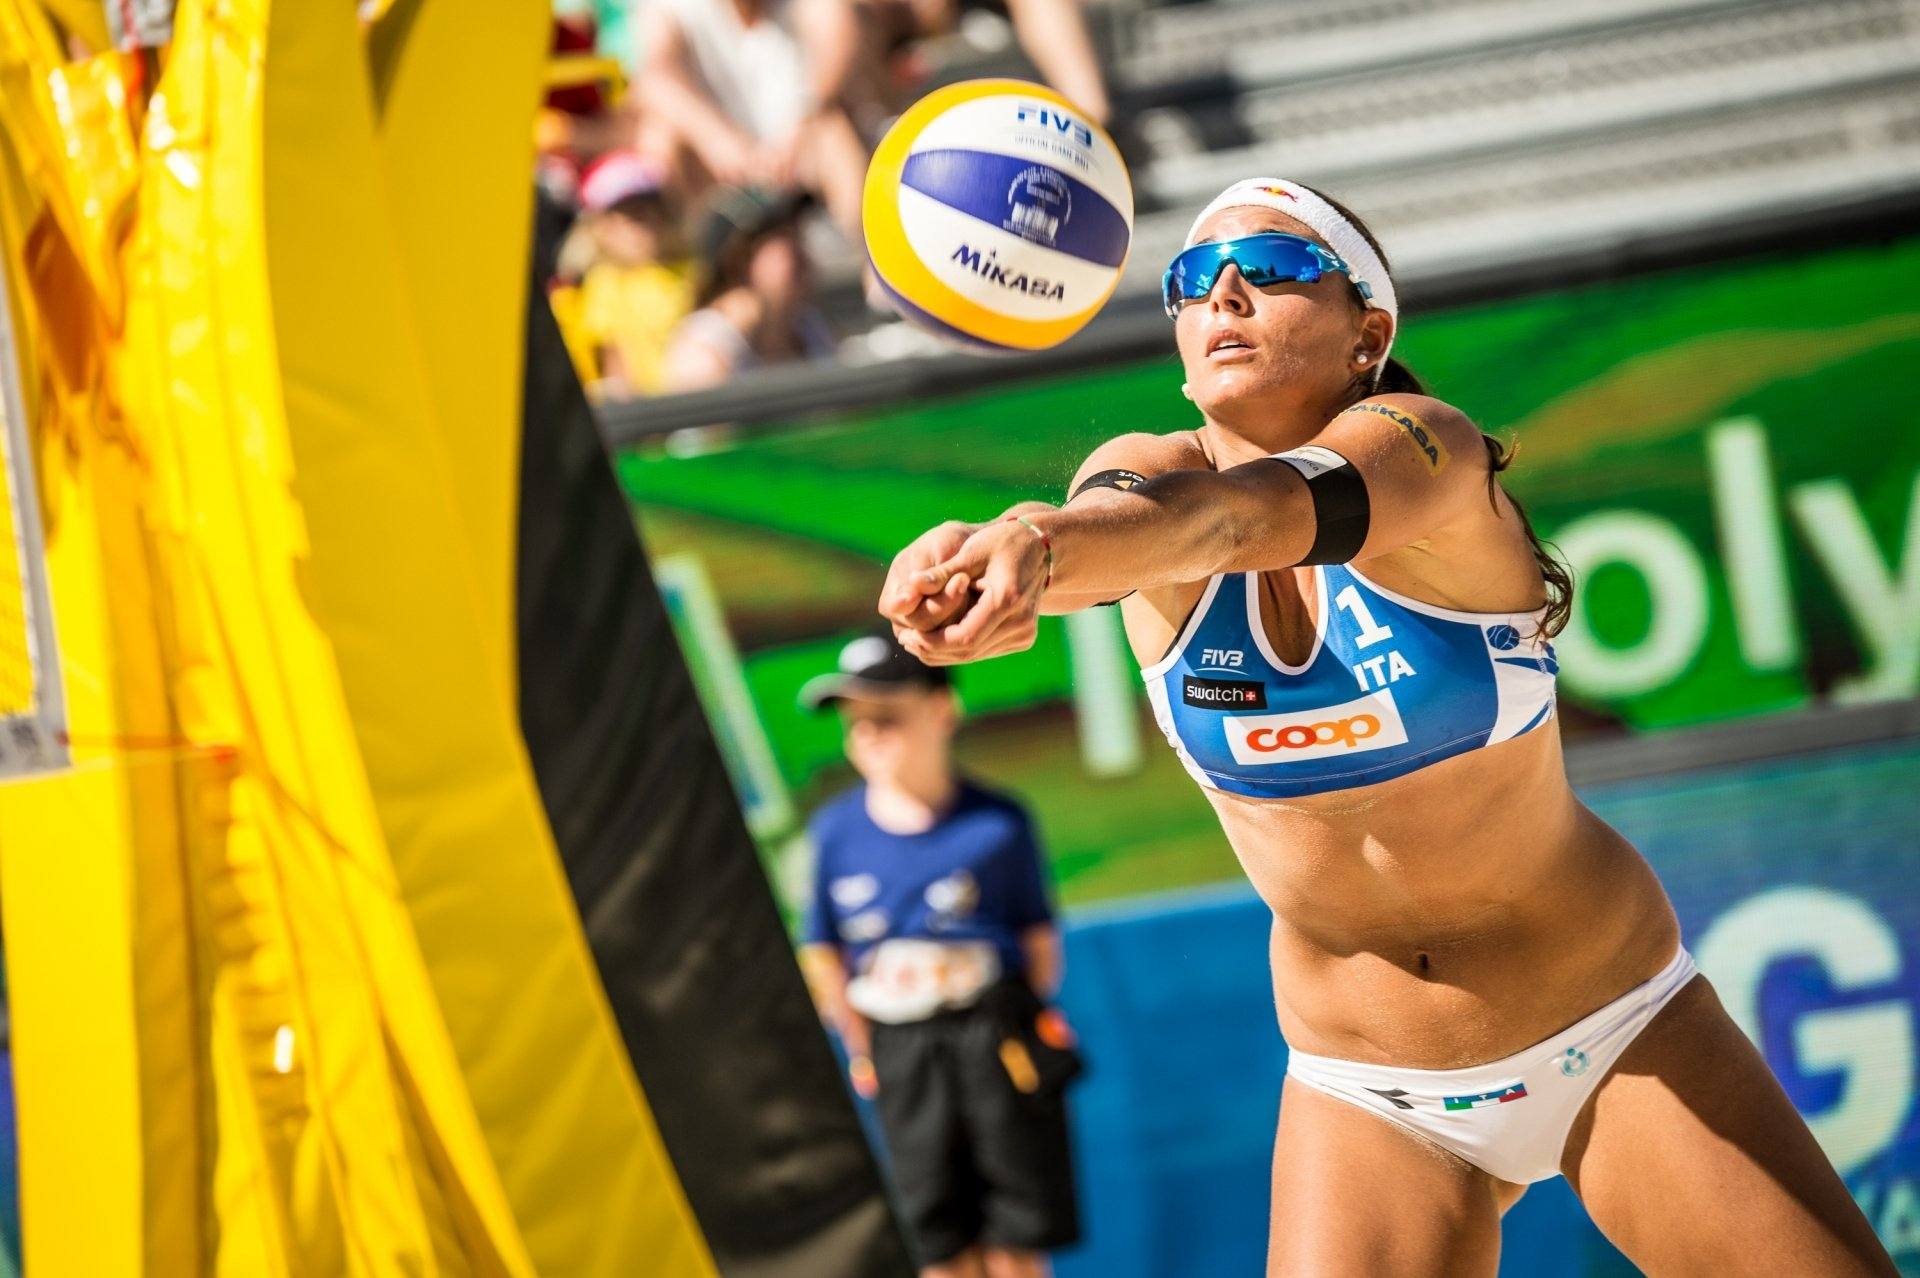 Italian star Marta Menegatti and partner Laura Giombini will debut against a Canadian team